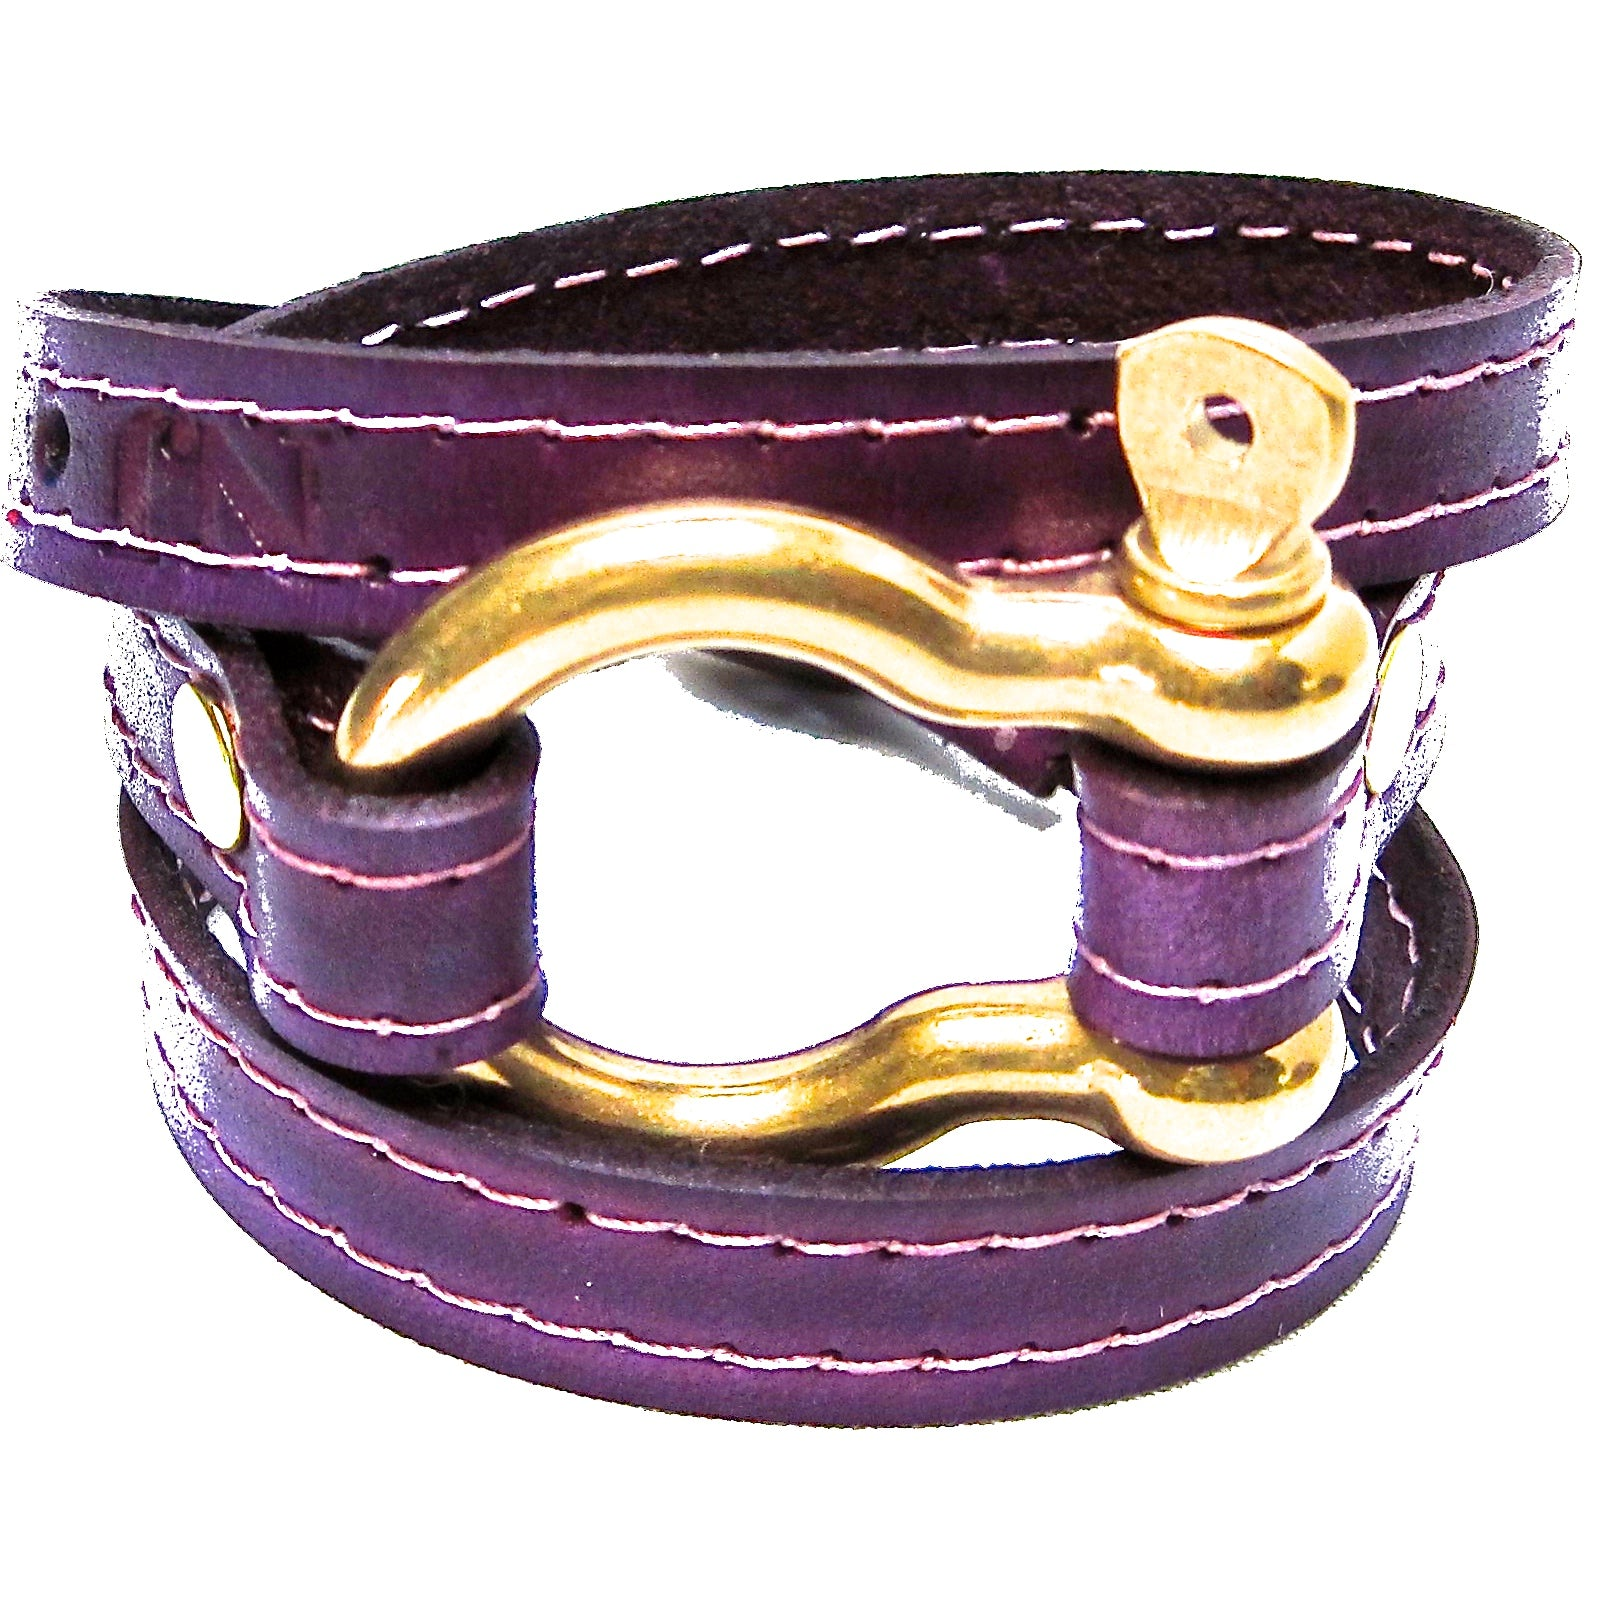 nyet jewelry Signature Gold Shackle Wraparound Bracelet Purple BY NYET JEWELRY